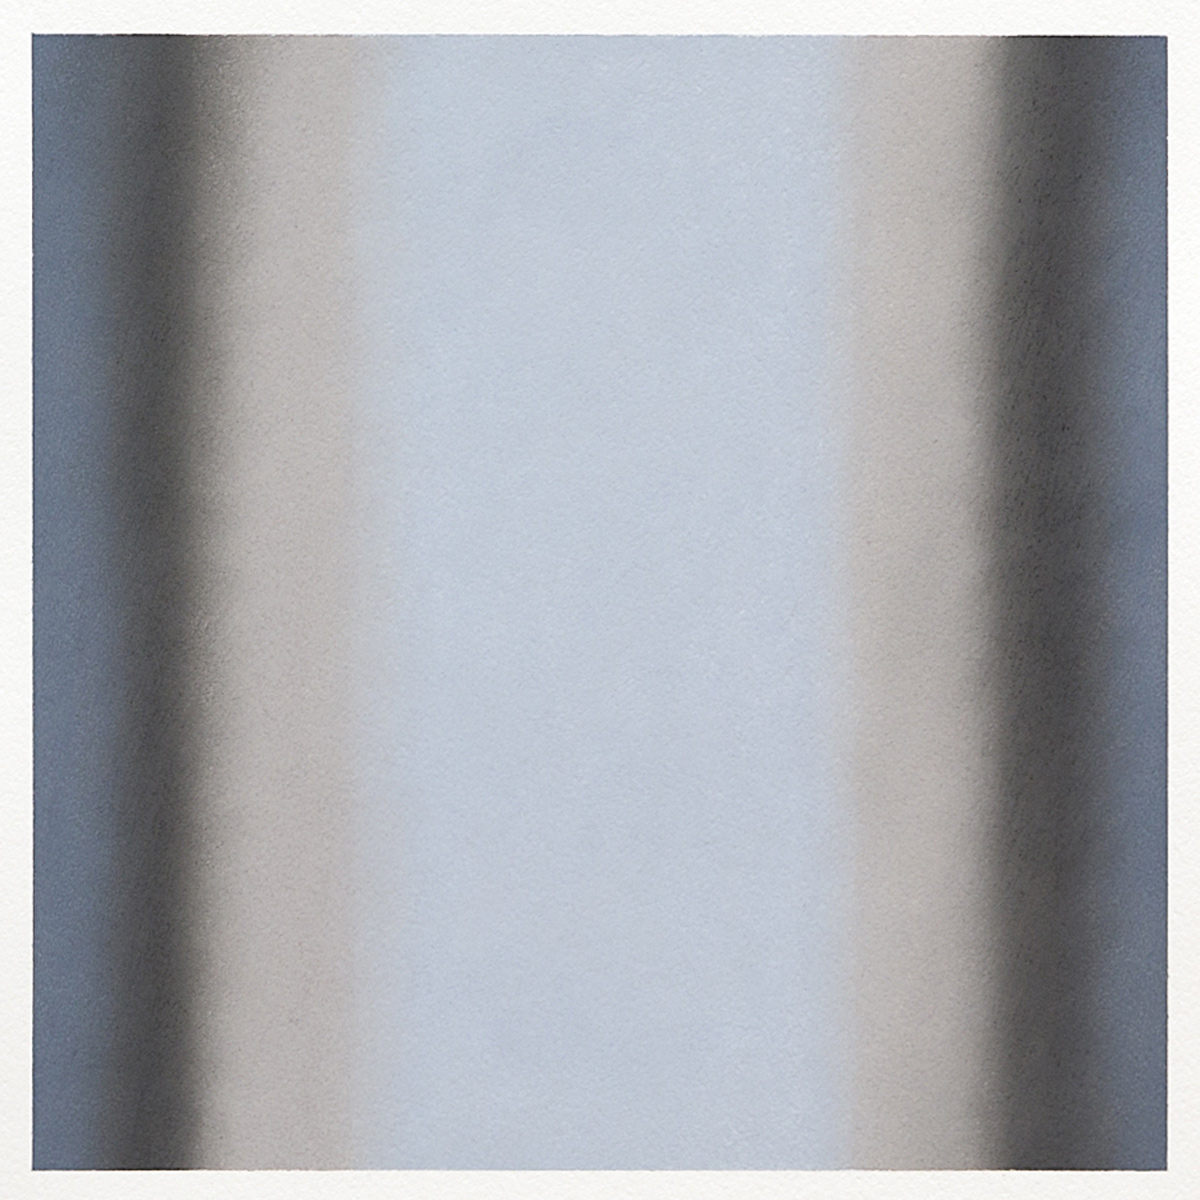 Gray Series #2, 2013, pastel on paper, image 14 x 14 in. (36 x 36 cm.), sheet 30 x 22 in. (76 x 56 cm.)